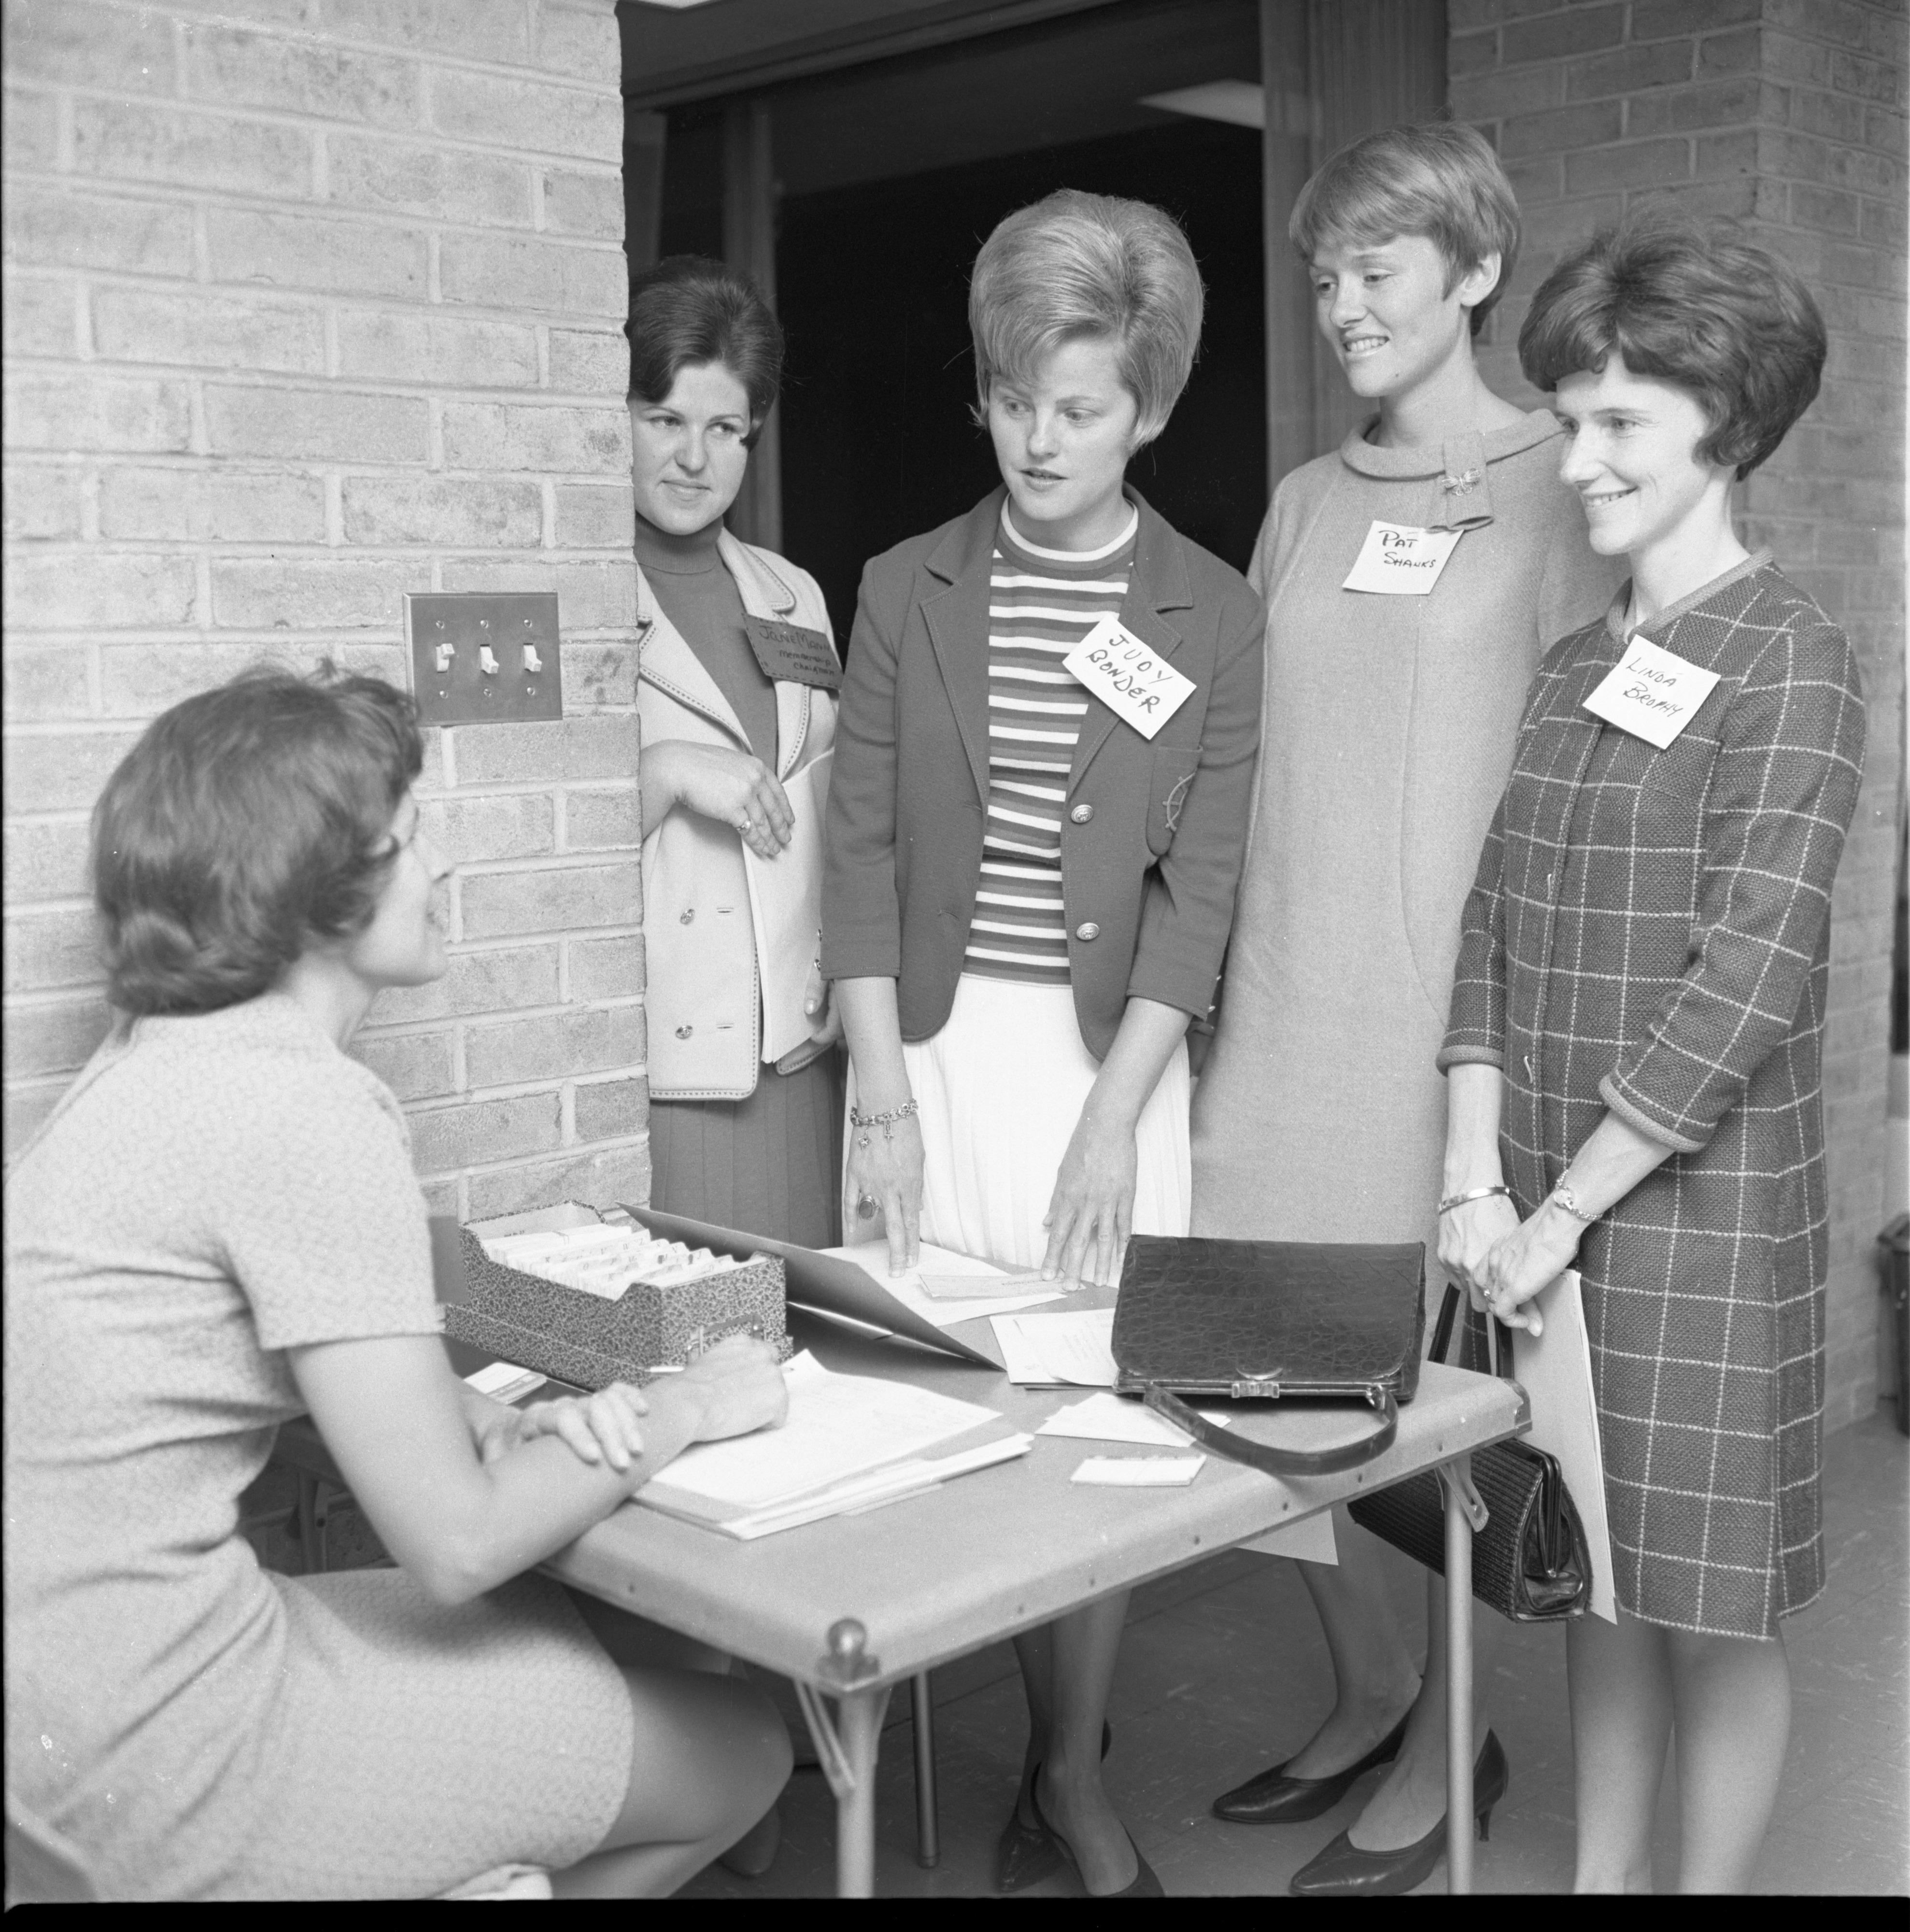 Ladies Discuss Finances With The Treasurer At A League Of Women Voters Gathering, September 1967 image